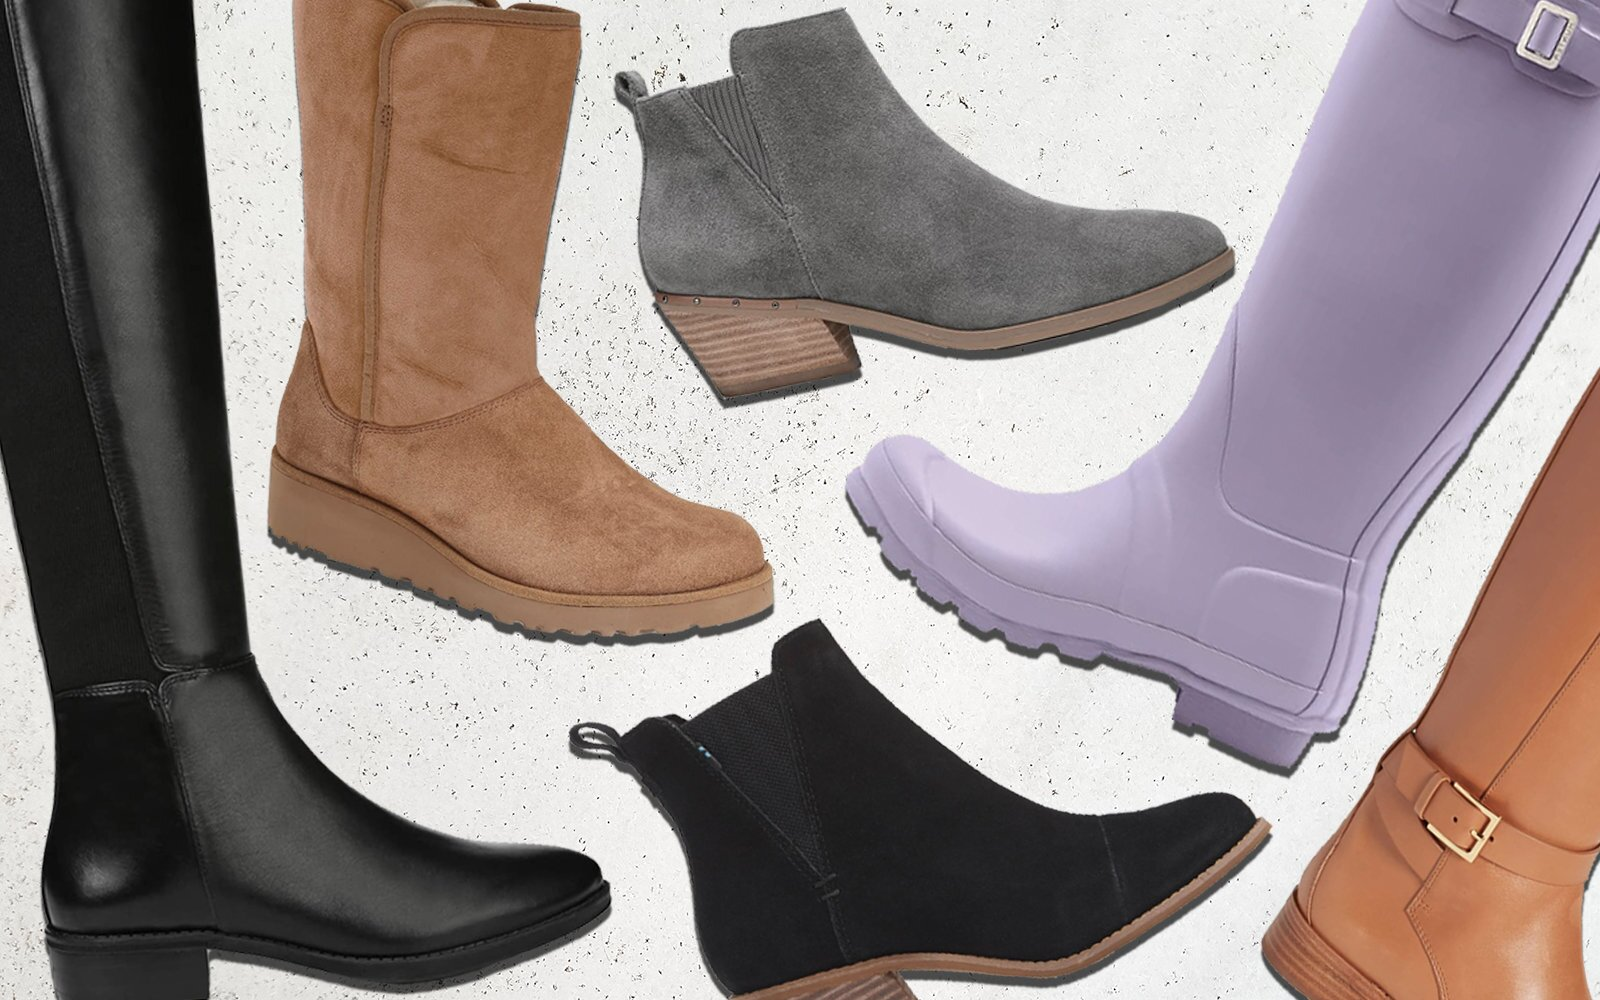 ab75ec32c 14 Travel-friendly Boots That Are Up to Half Off at Nordstrom Right Now